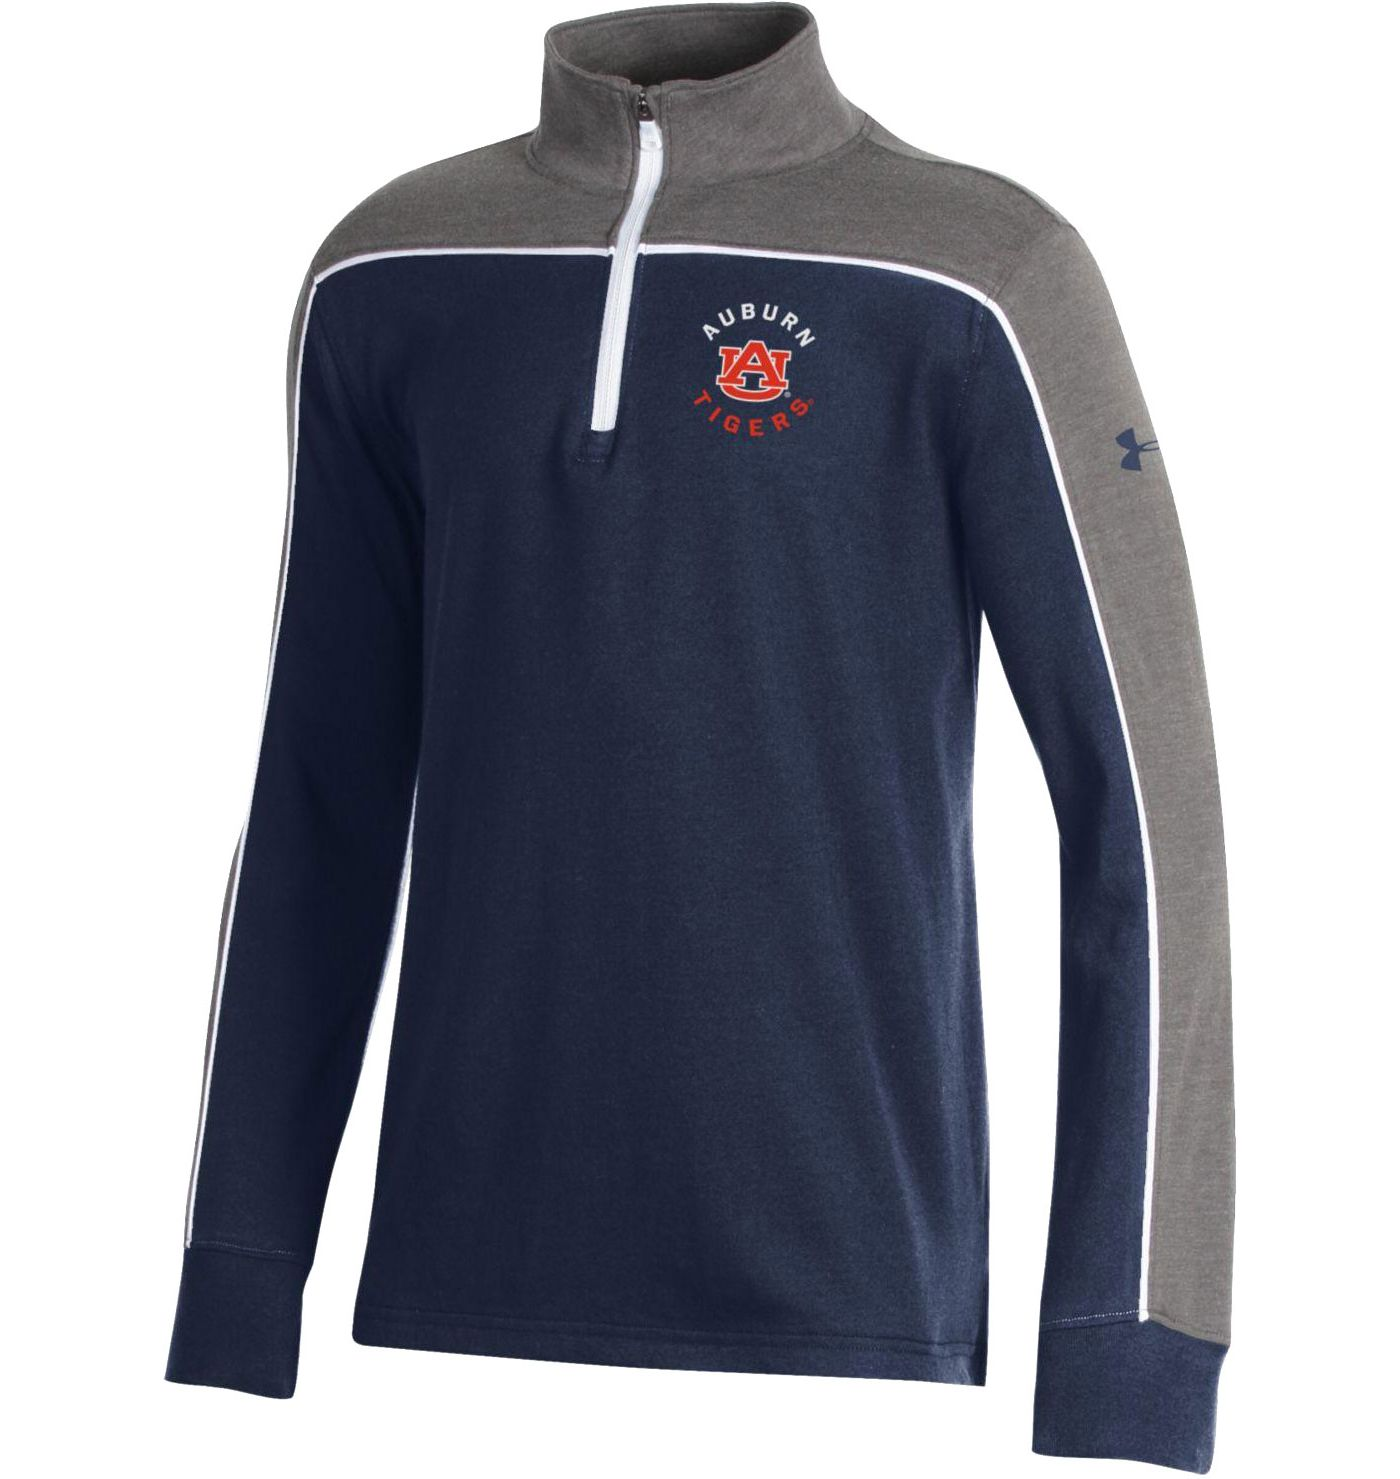 Under Armour Youth Auburn Tigers Blue Tri-Color Charged Cotton Quarter-Zip Shirt